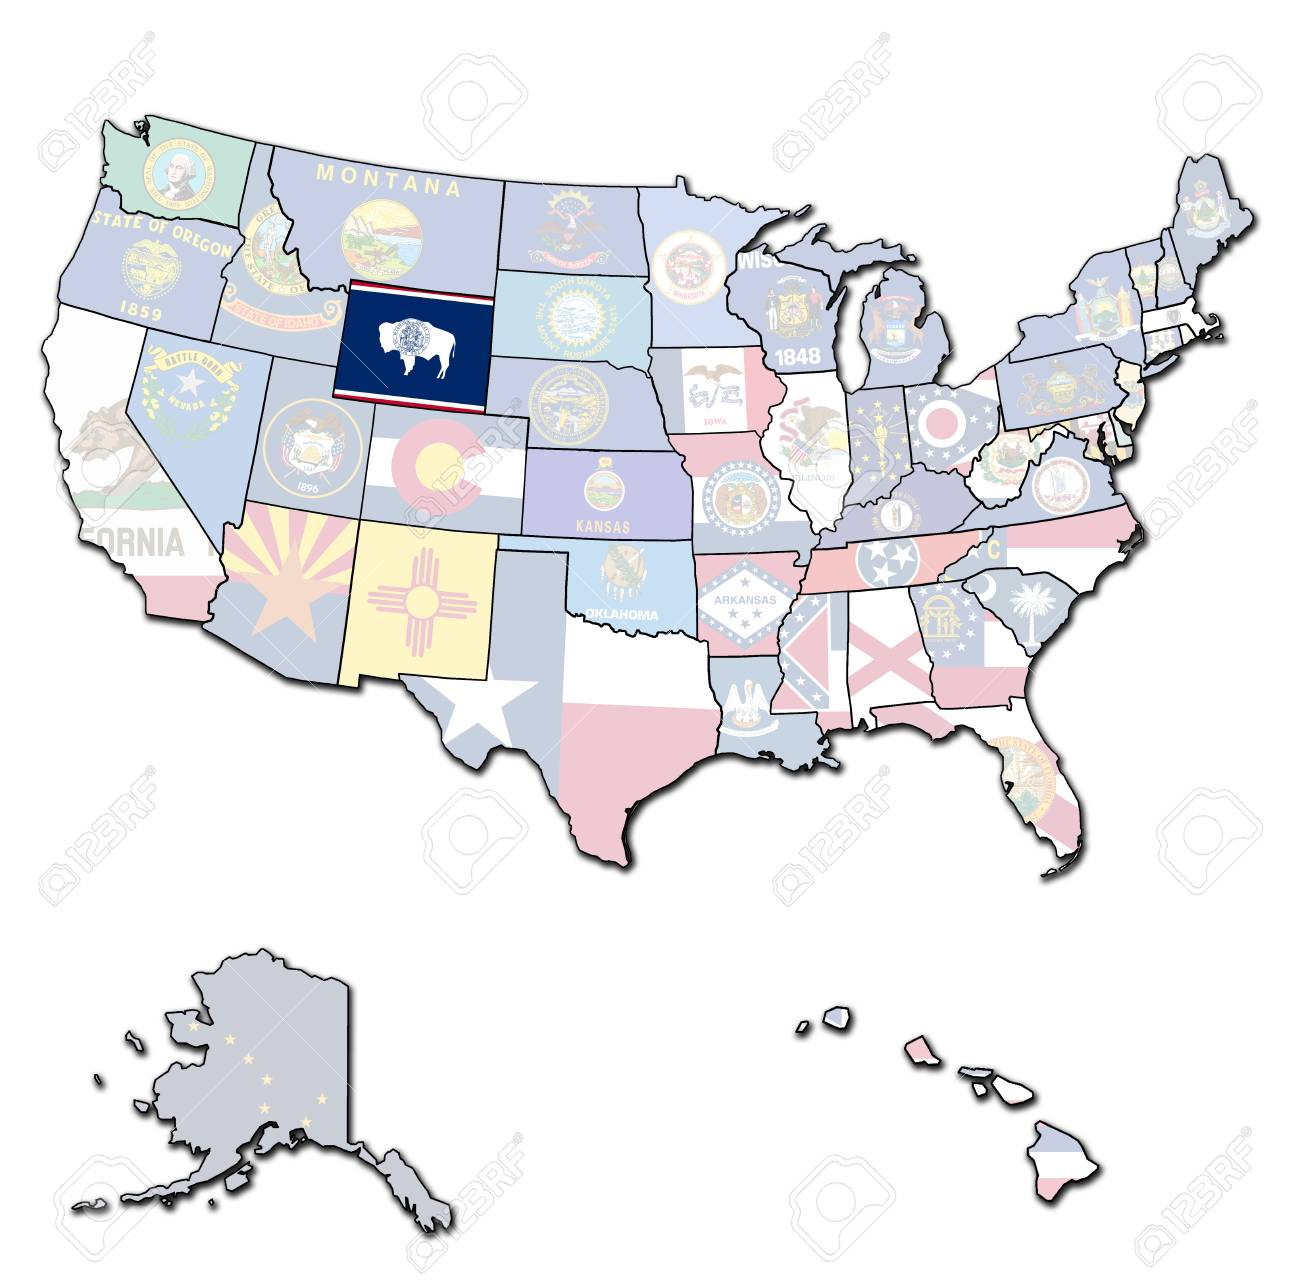 Wyoming On Isolated Map Of United States Of America With State - Wyoming-us-map